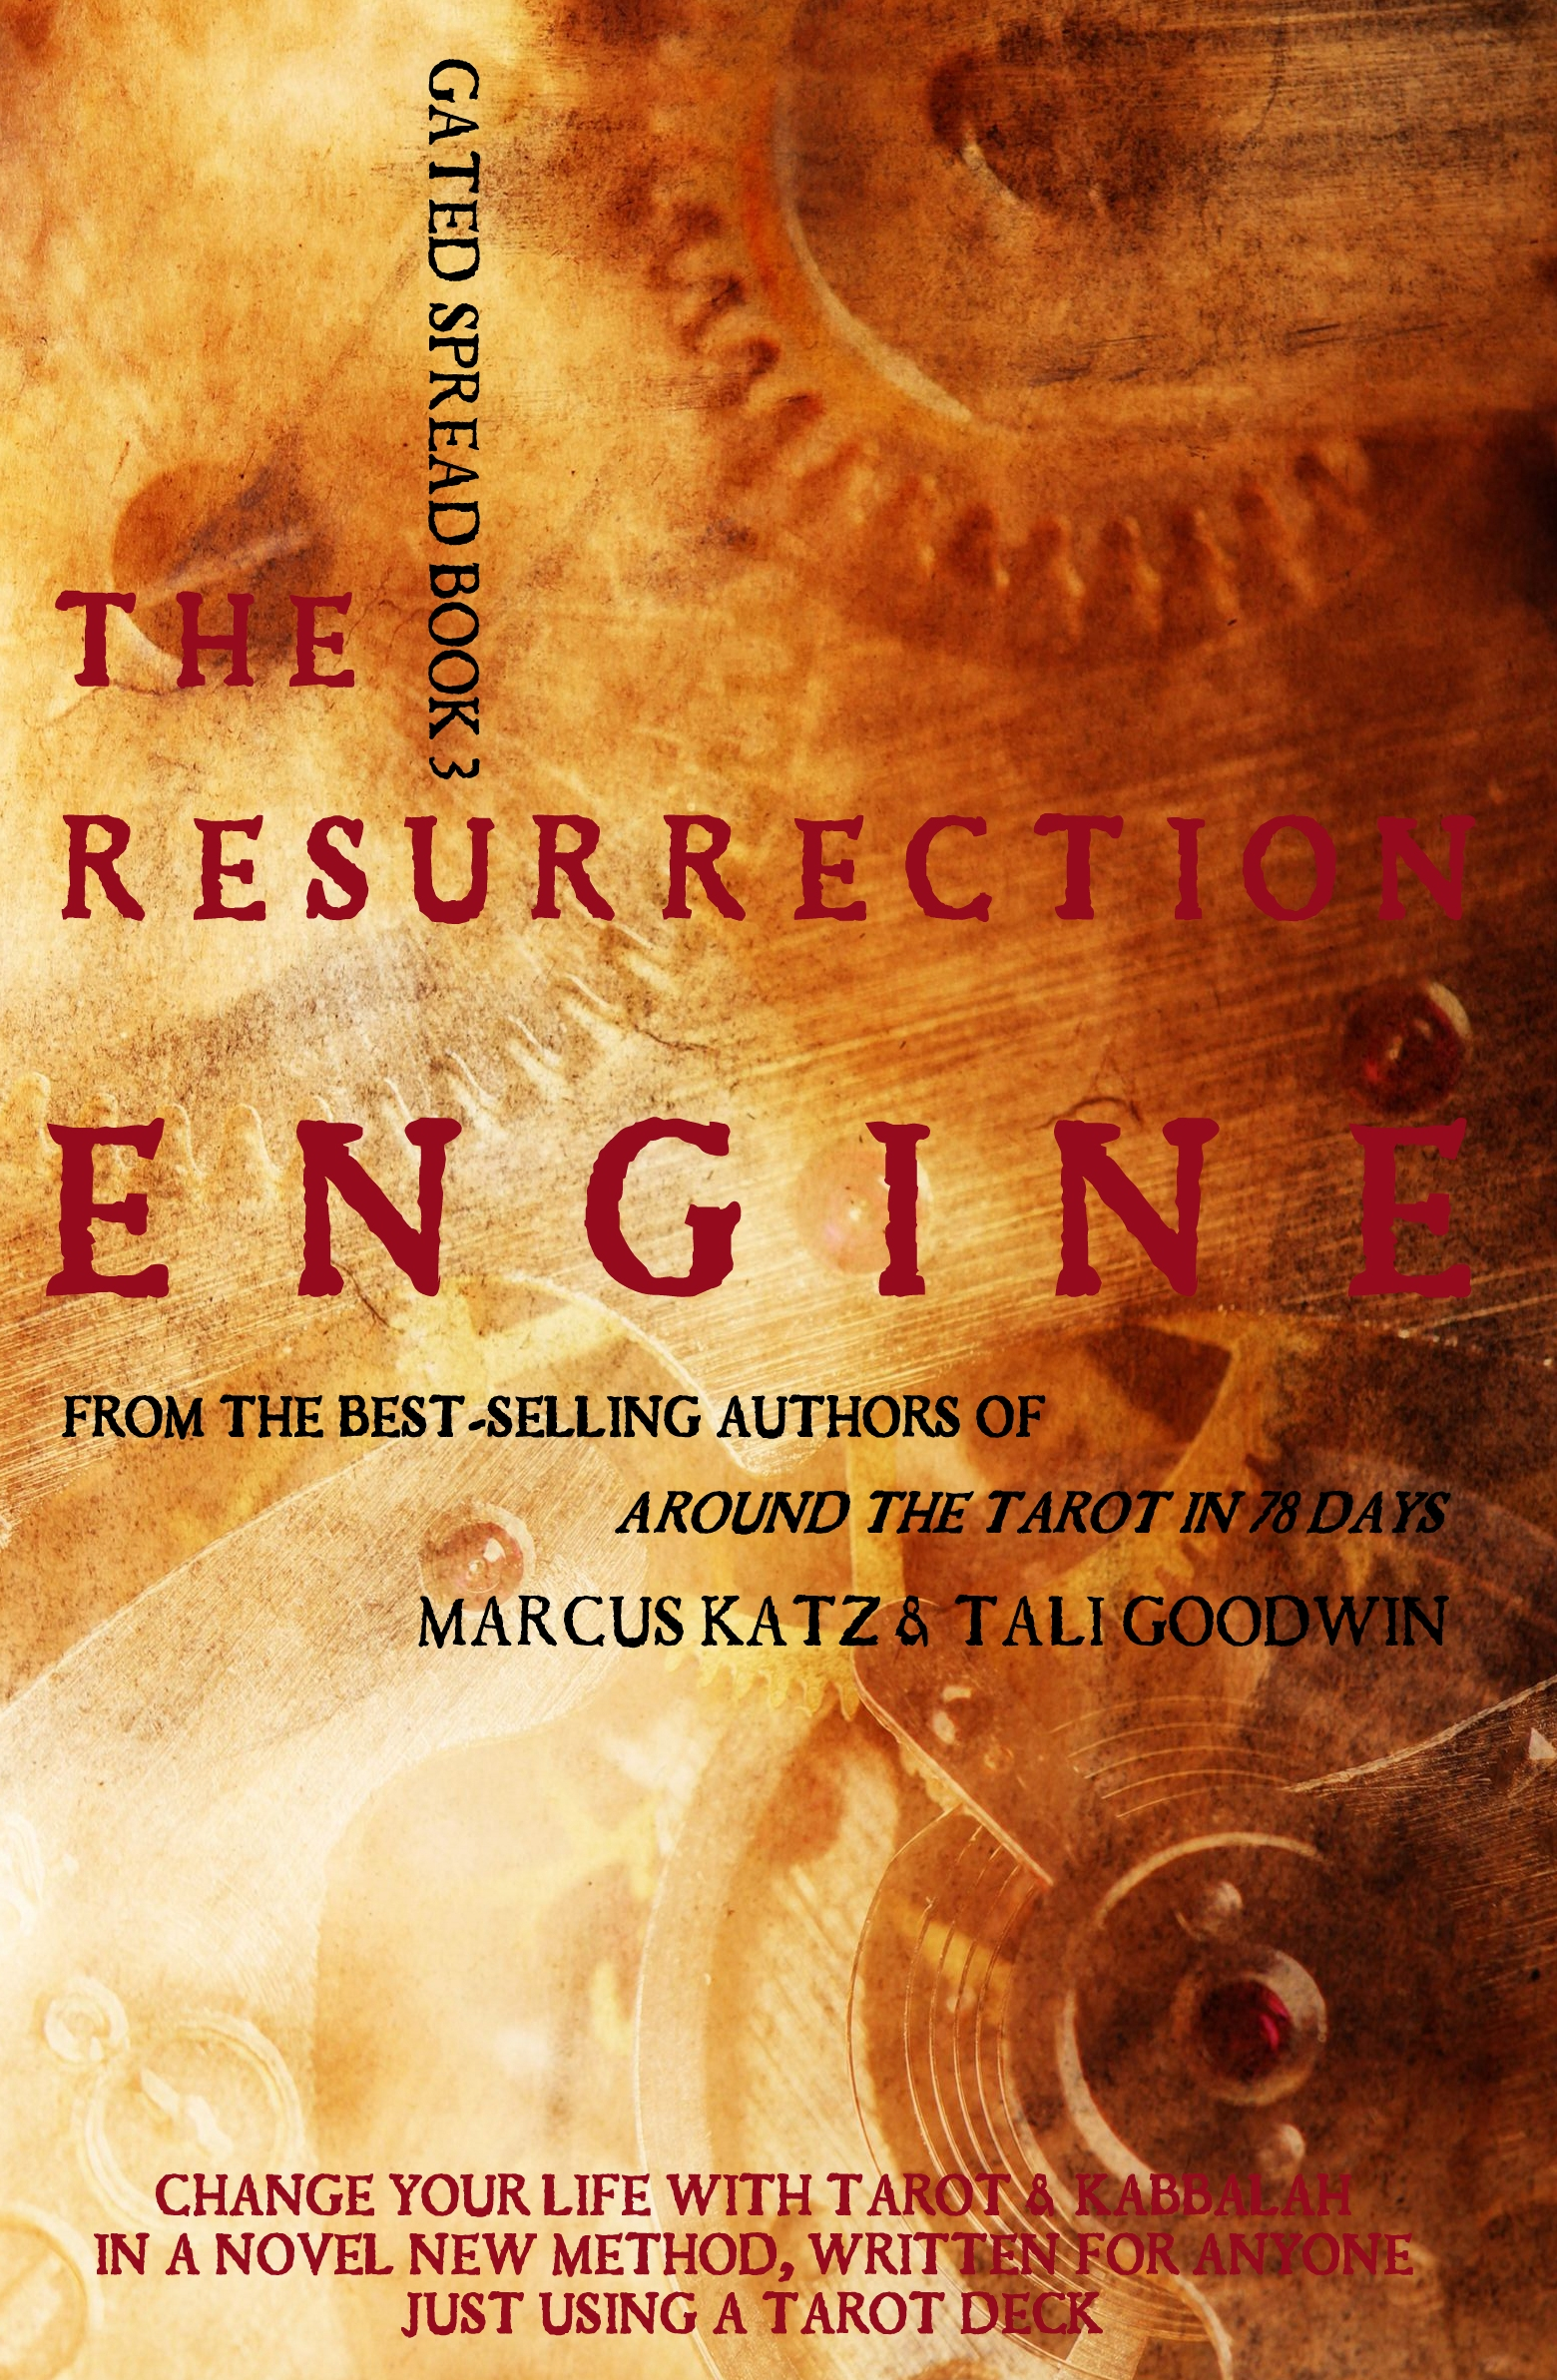 THE RESURRECTION ENGINE